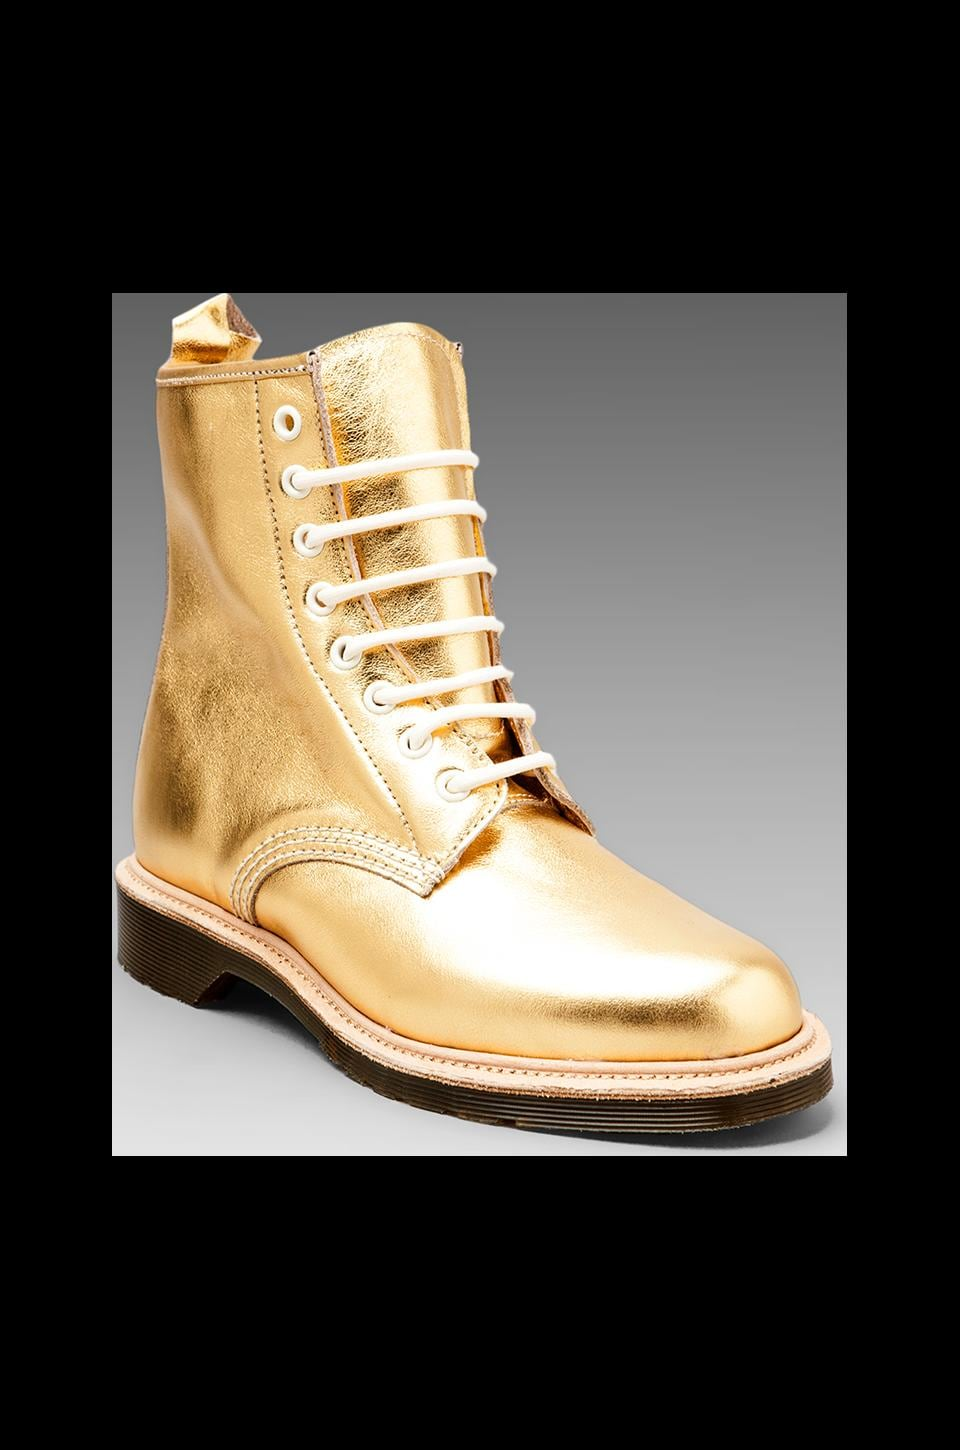 Dr. Martens Mie 1460 8 Eye Boot in Gold